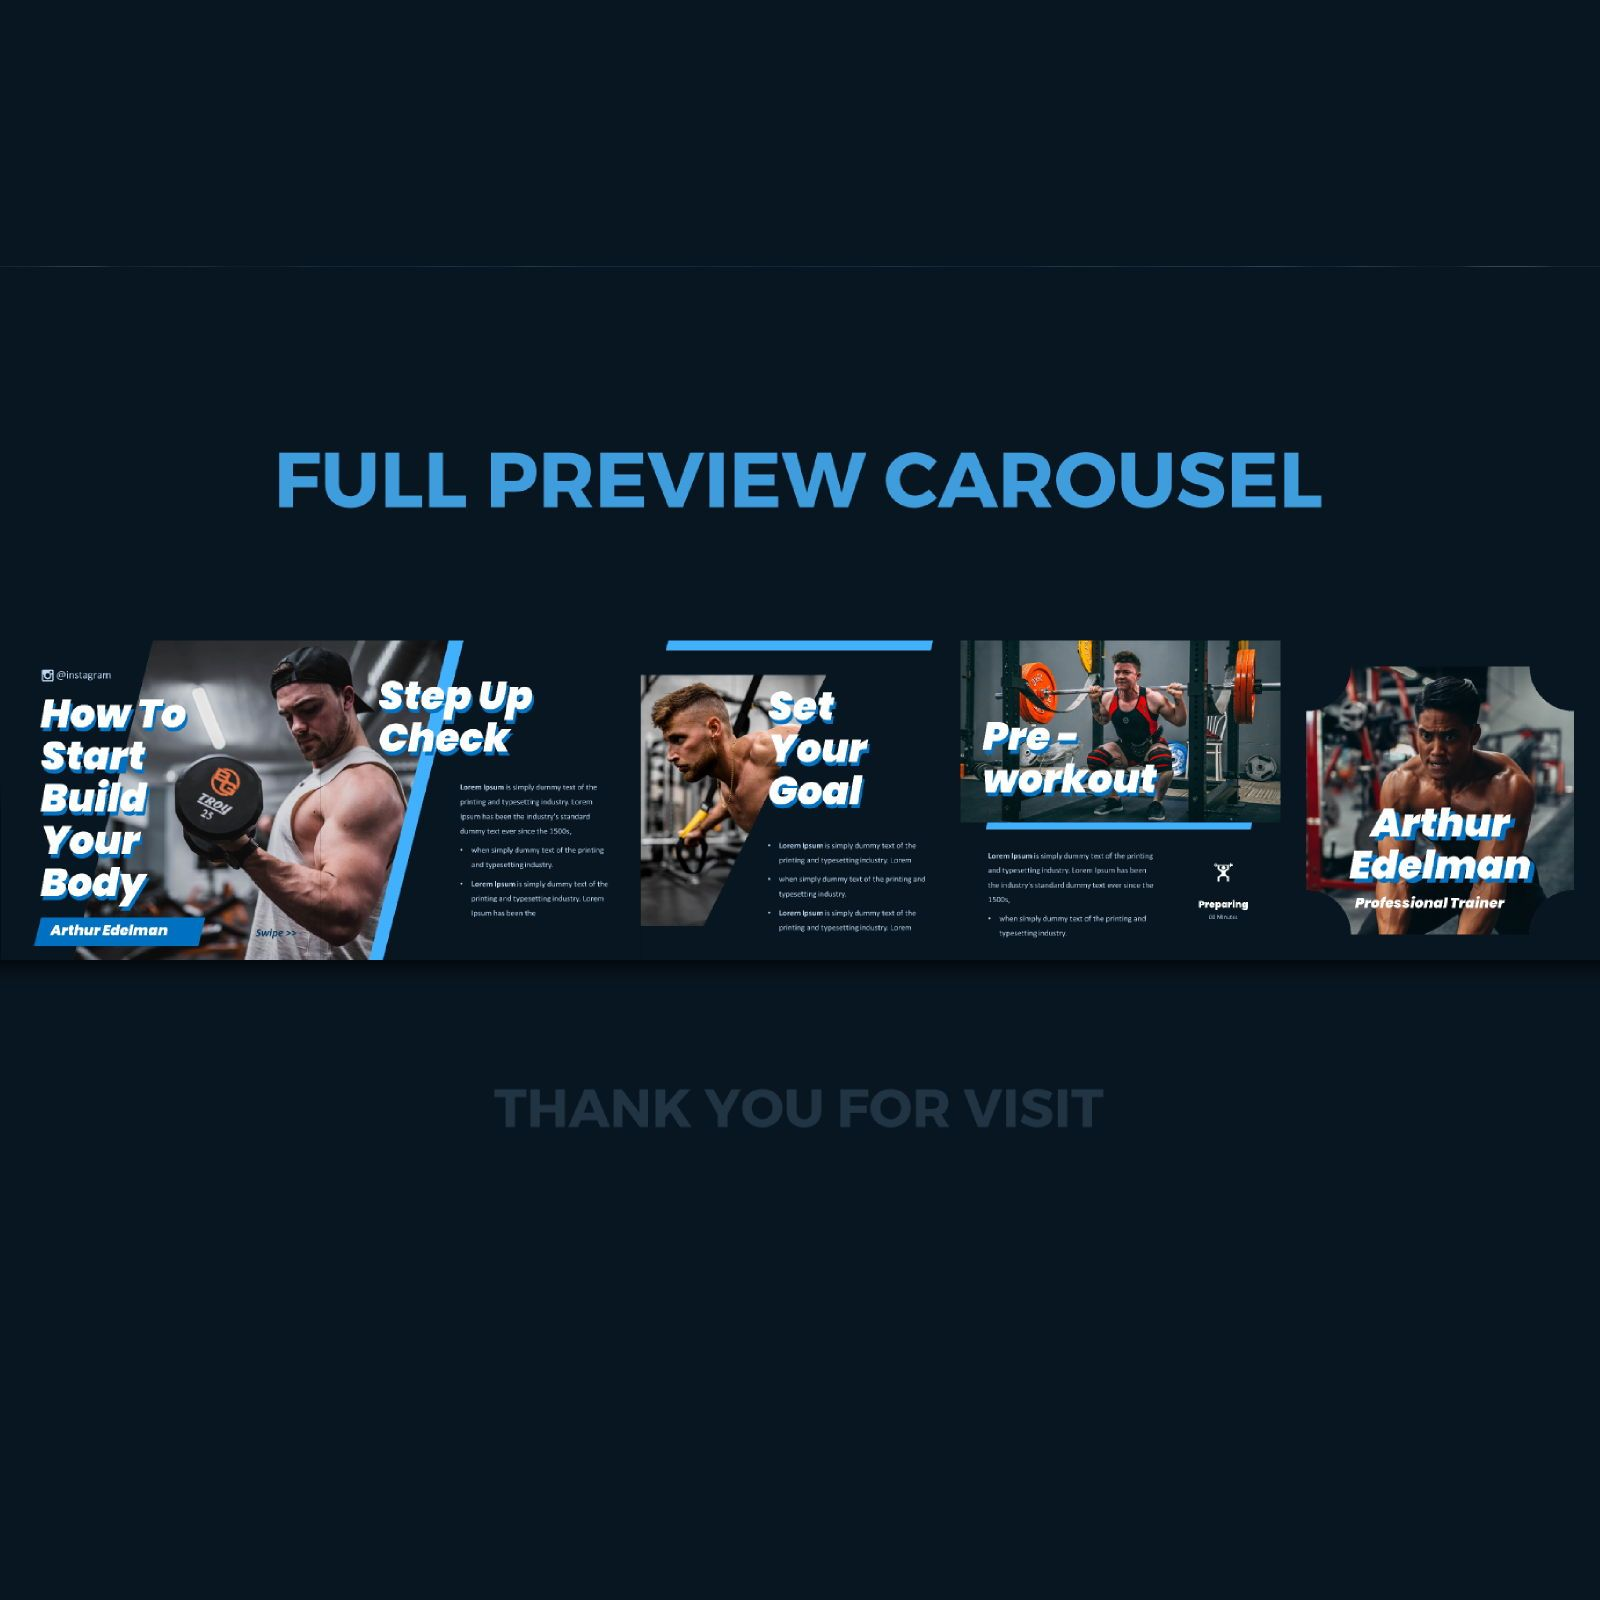 Gym trainer instagram carousel powerpoint template, Slide 3, 07529, Infographics — PoweredTemplate.com